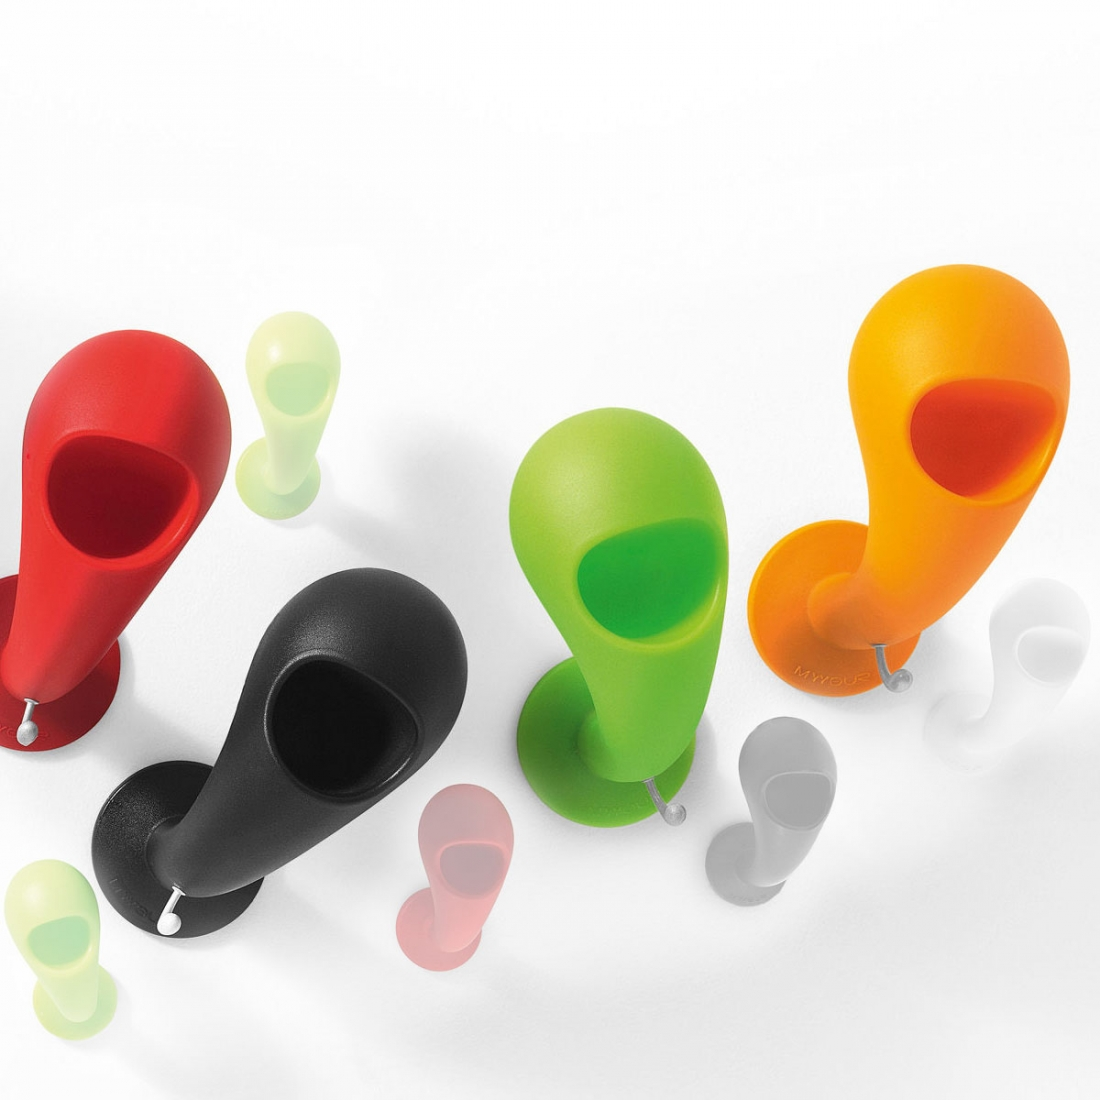 patere design. Black Bedroom Furniture Sets. Home Design Ideas